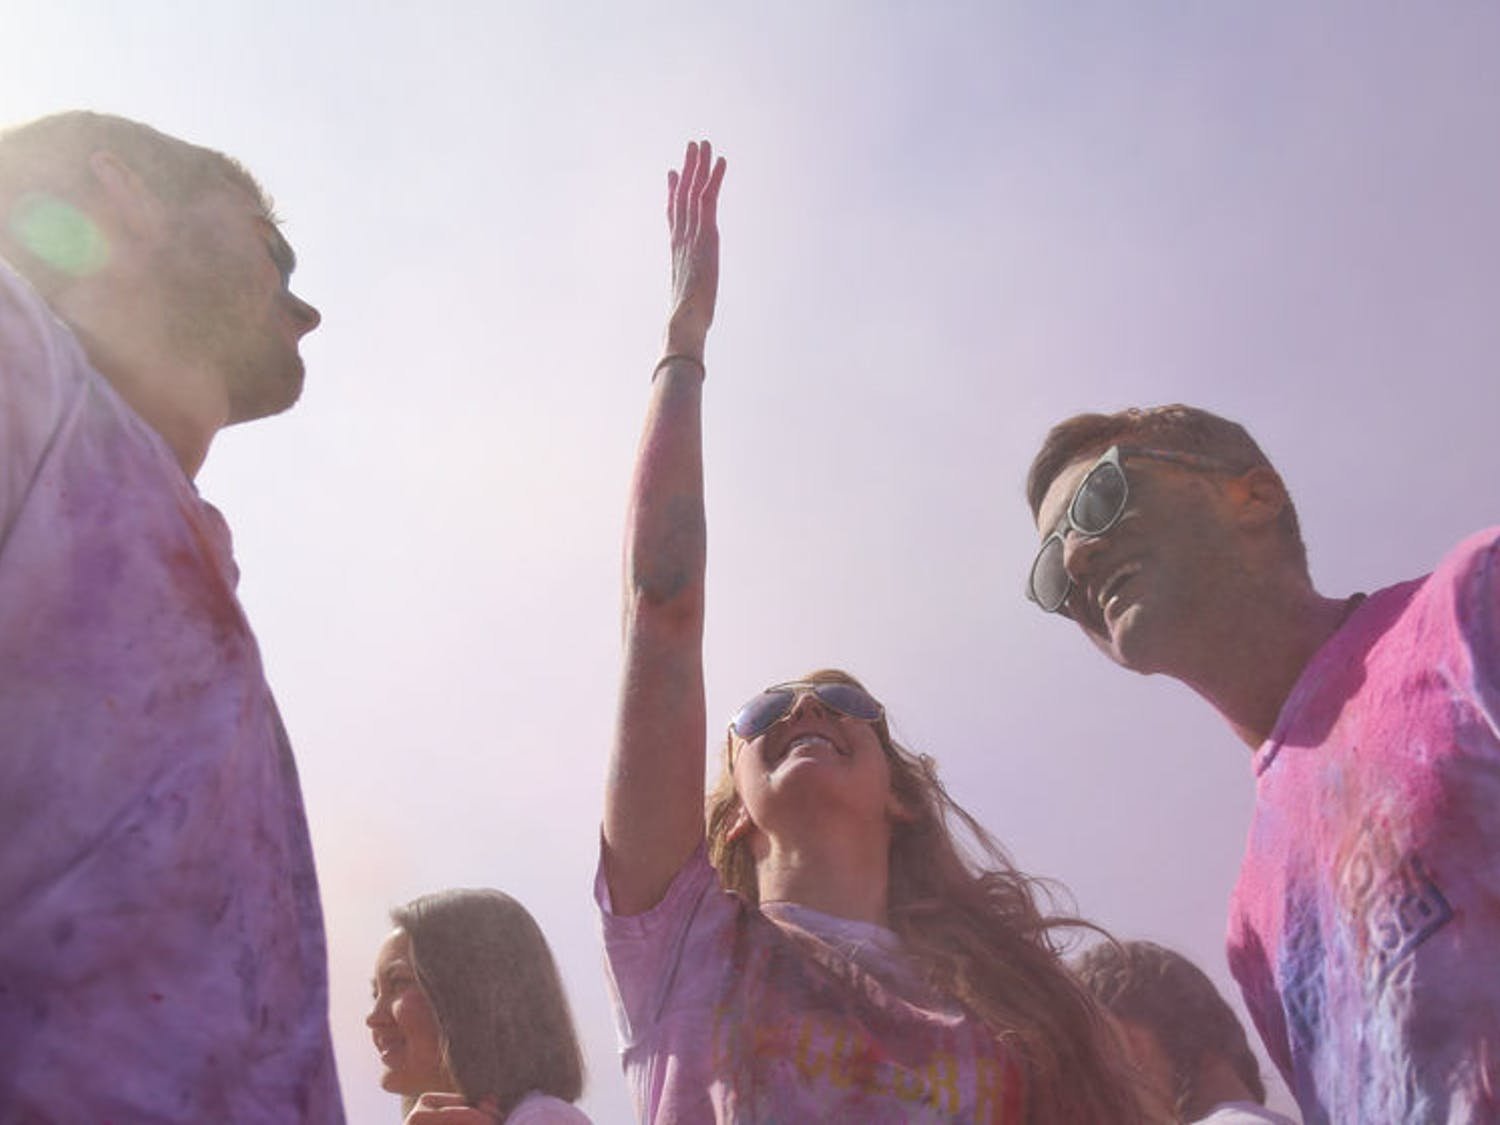 Underneath a crisp blue sky, hundreds of students and members of the Gainesville community gathered on Hume Field to fling brightly colored powder at each other for Holi, an Indian holiday that celebrates the commencement of spring. The event was hosted by UF's Indian Student Association and Student Government.